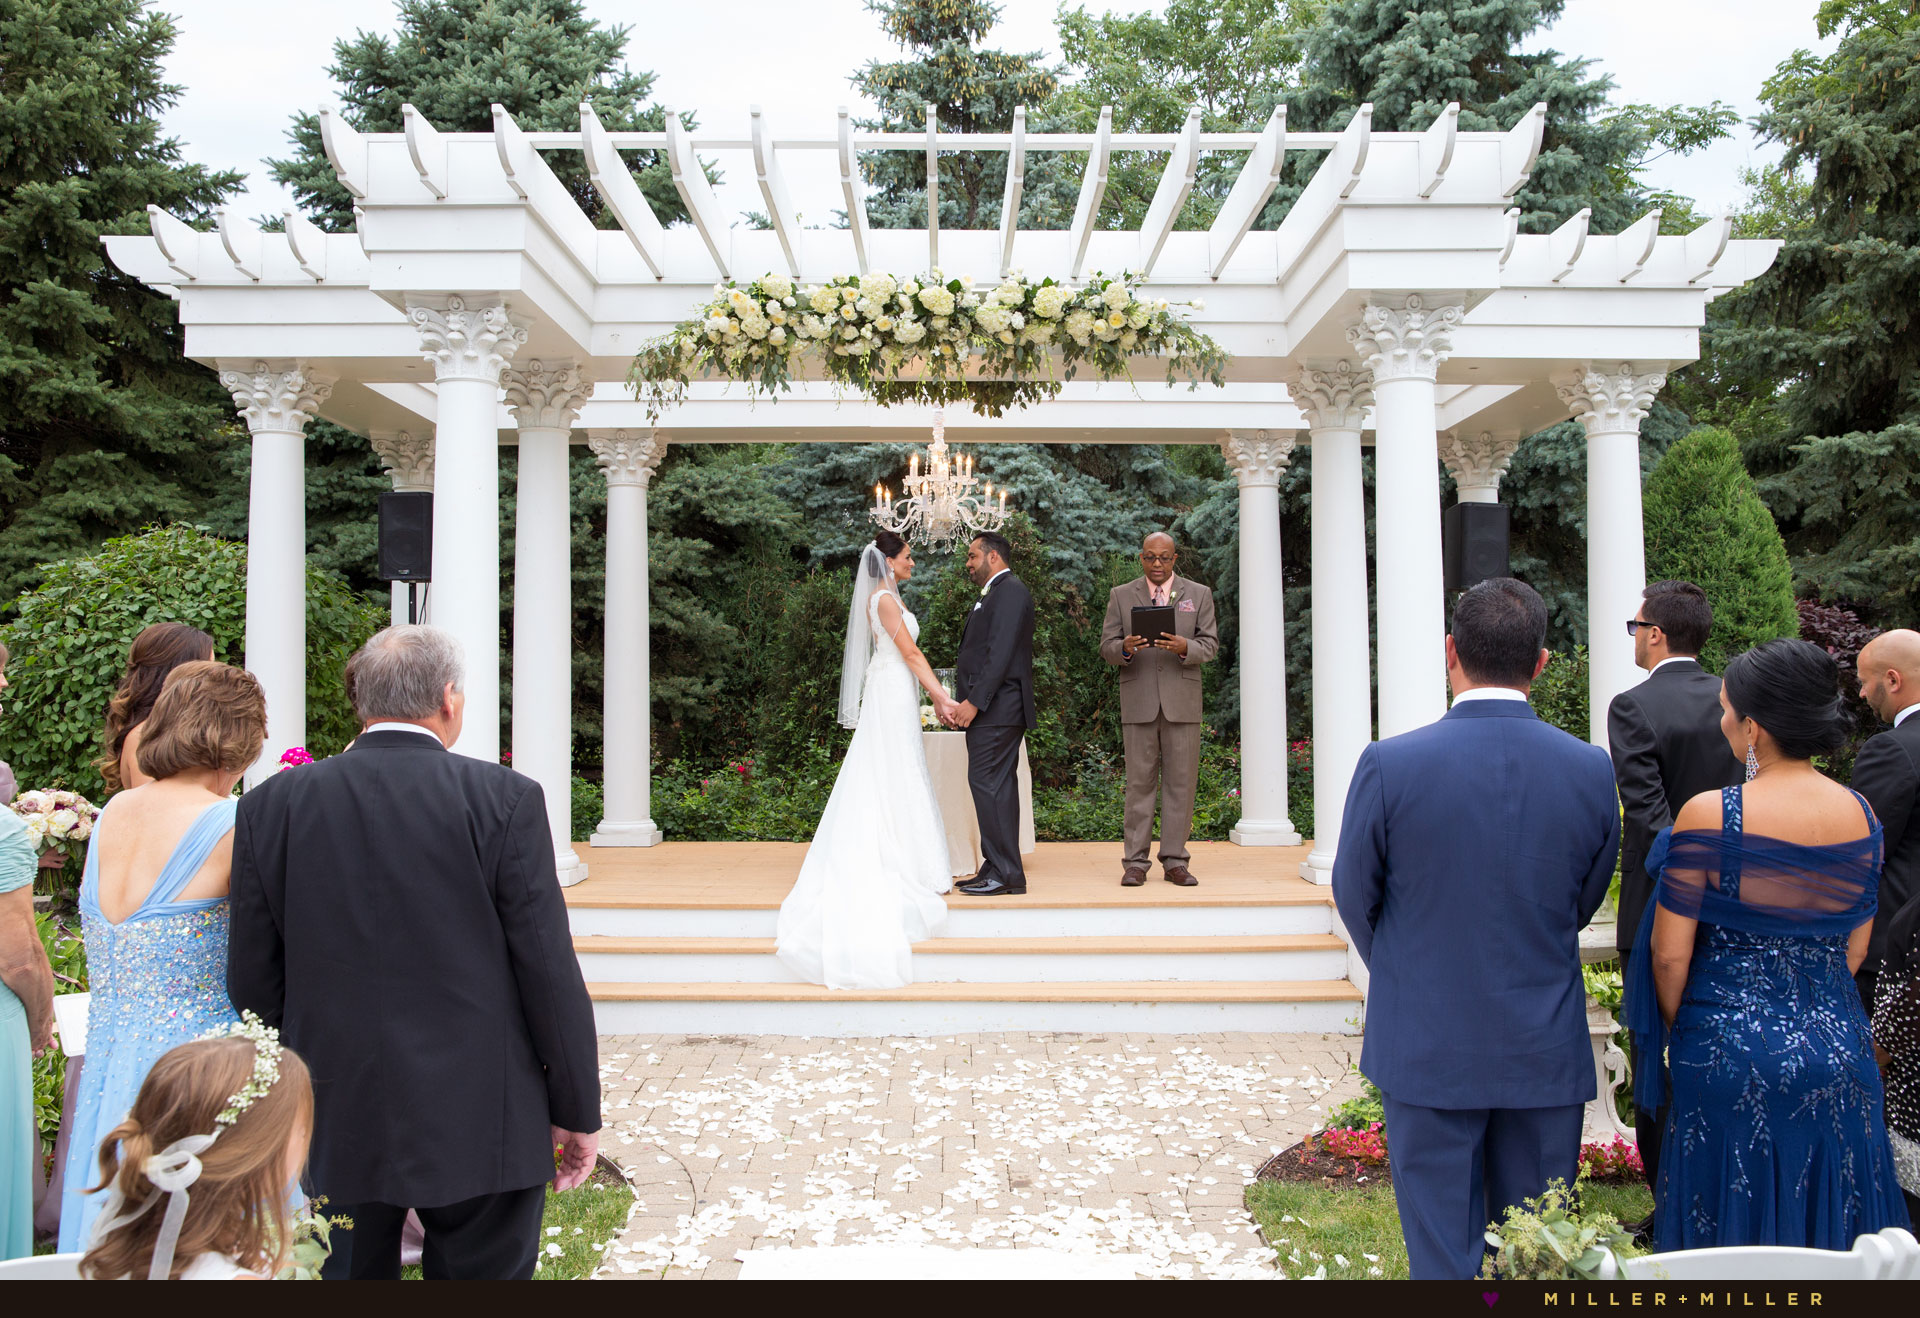 Sarah + Ozzie Guillen JR Wedding At Patrick Haley Mansion